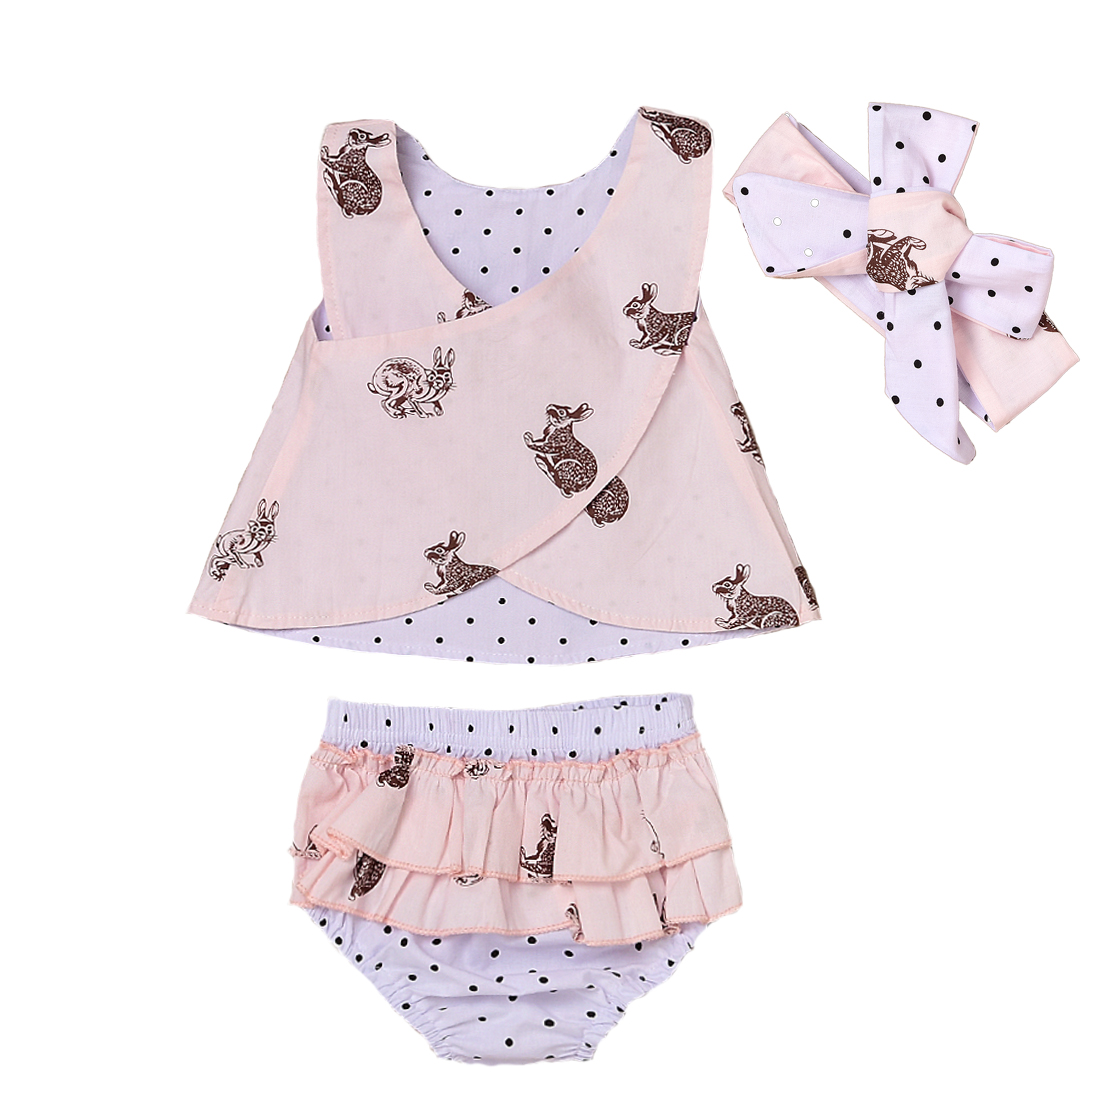 3pcs Toddler Baby Kids Girl Clothing Tops Summer Top Bunny